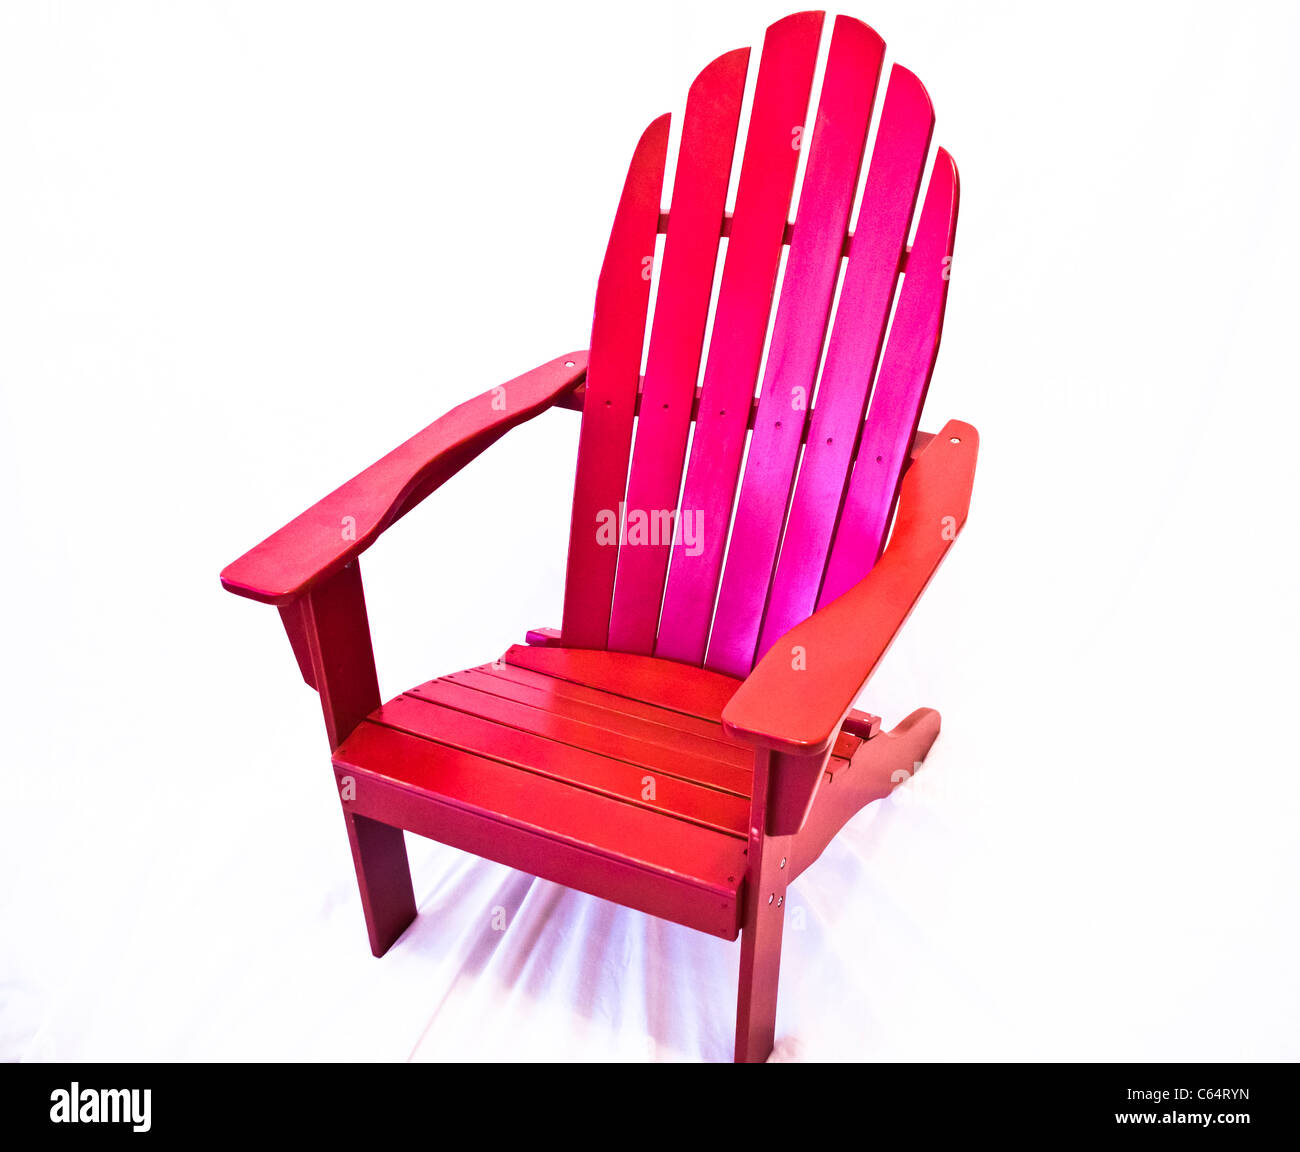 Swell A Adirondack Chair Shot On A White Background Some Beatyapartments Chair Design Images Beatyapartmentscom